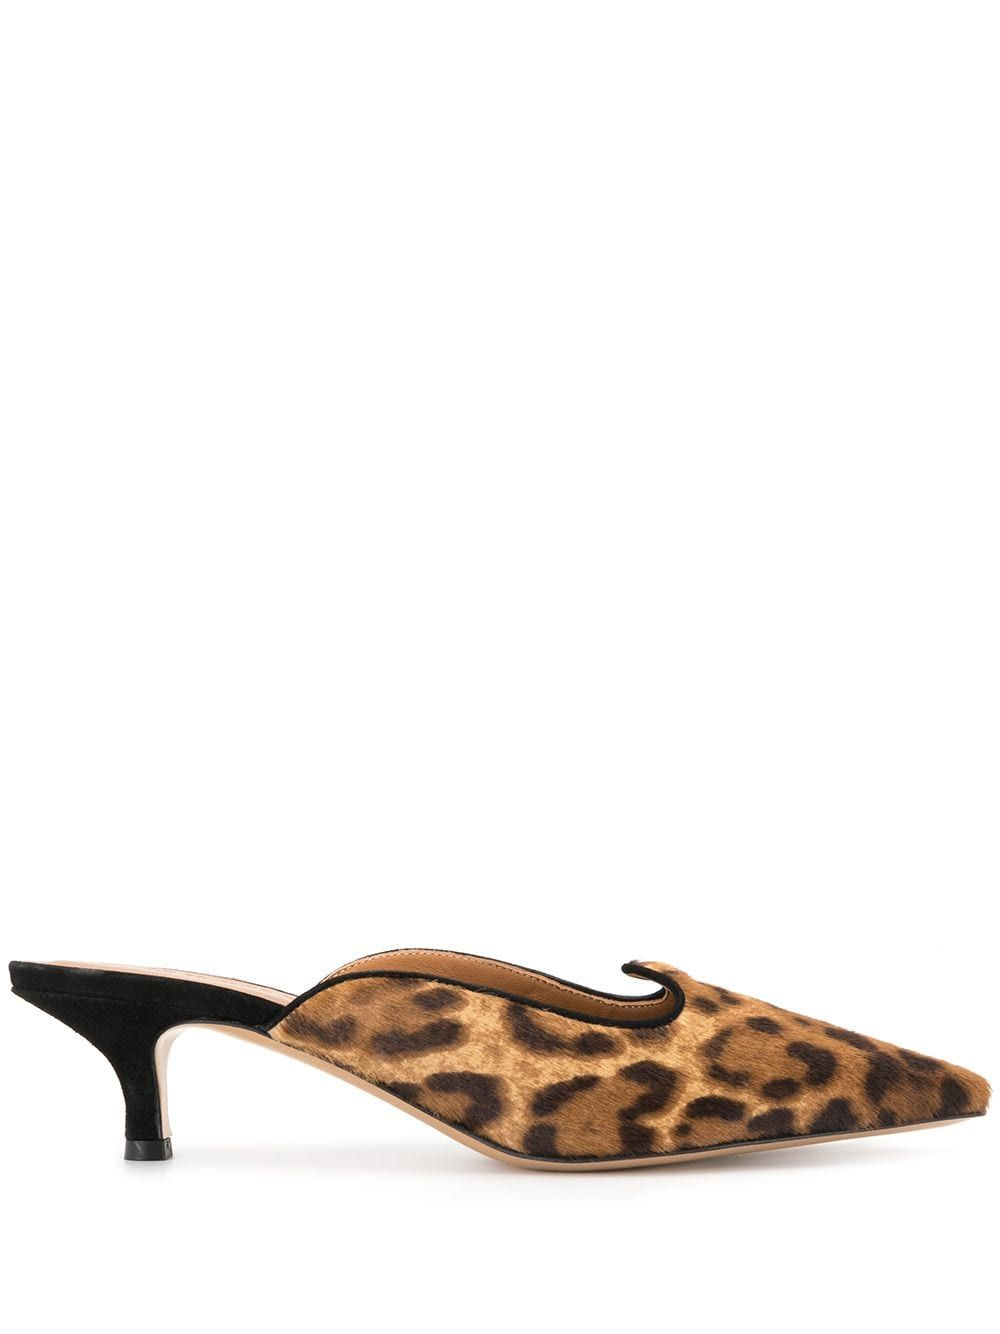 Brown leather leopard print kitten heel mules from Le Monde Beryl featuring a pointed toe, a slip-on style, a leather insole, suede panels, a leopard print and a low heel.